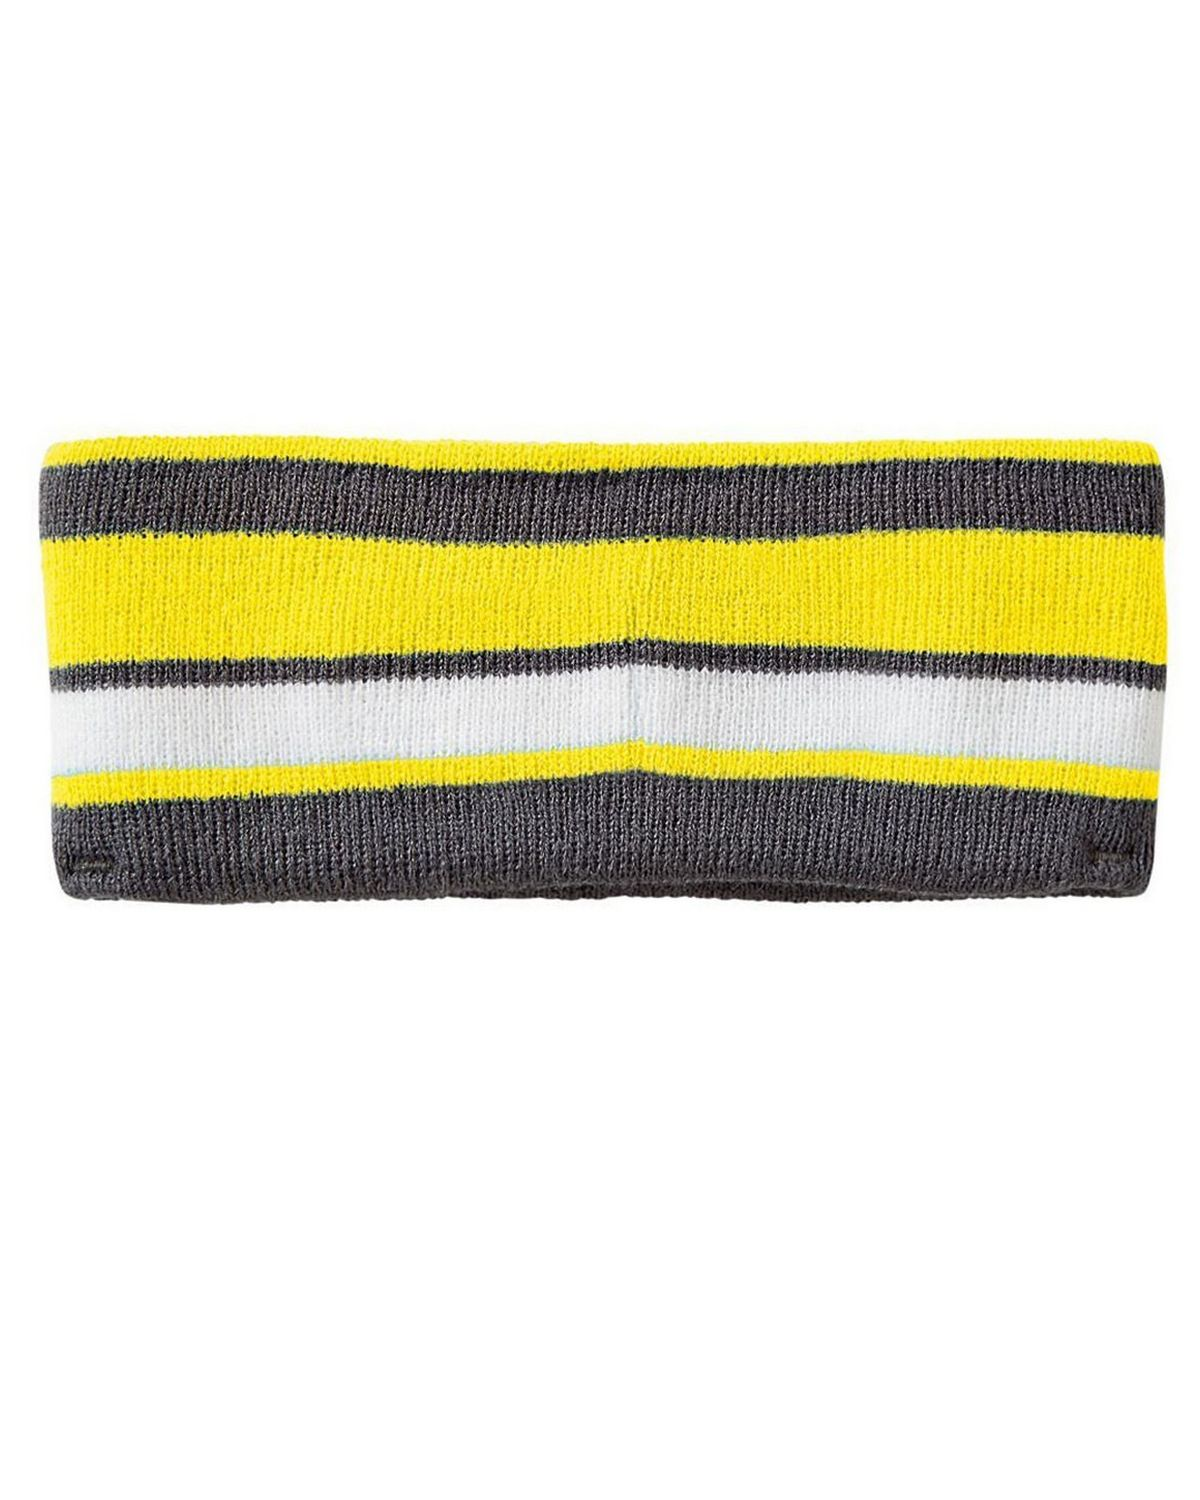 Holloway 223837 Acrylic Rib Knit Comeback Headband